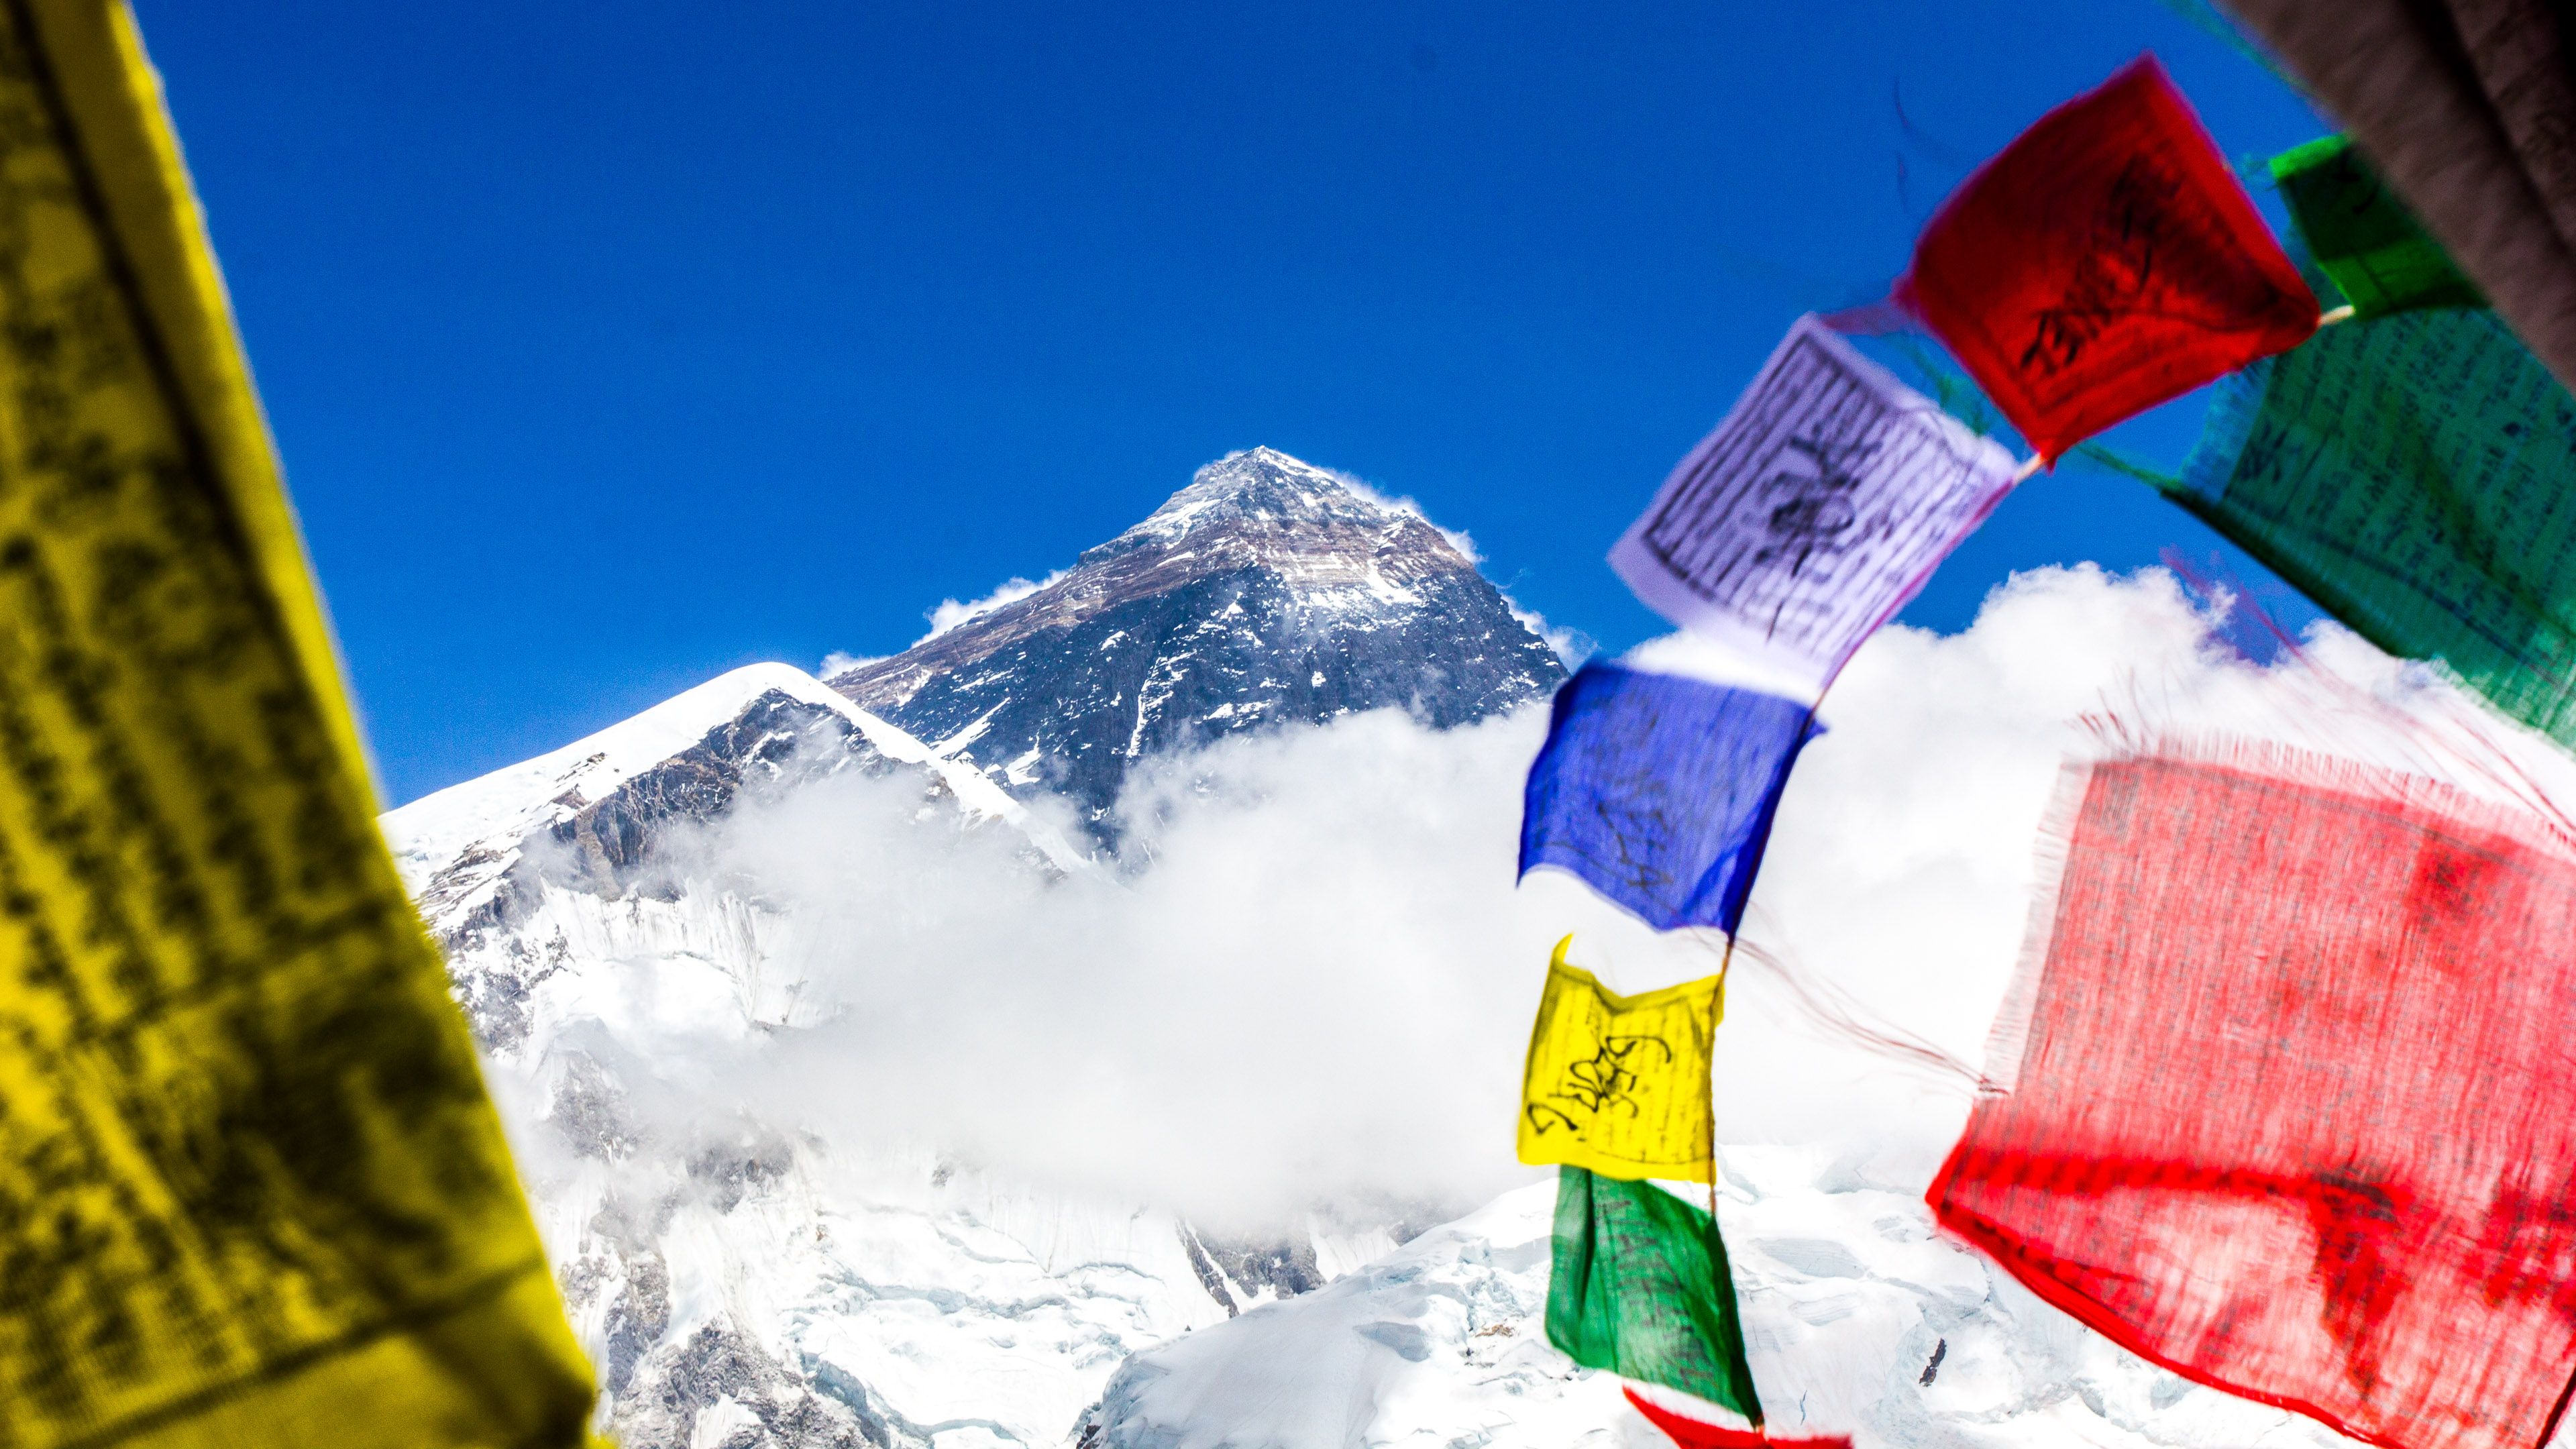 Everest Base Camp Trek (Dingboche)